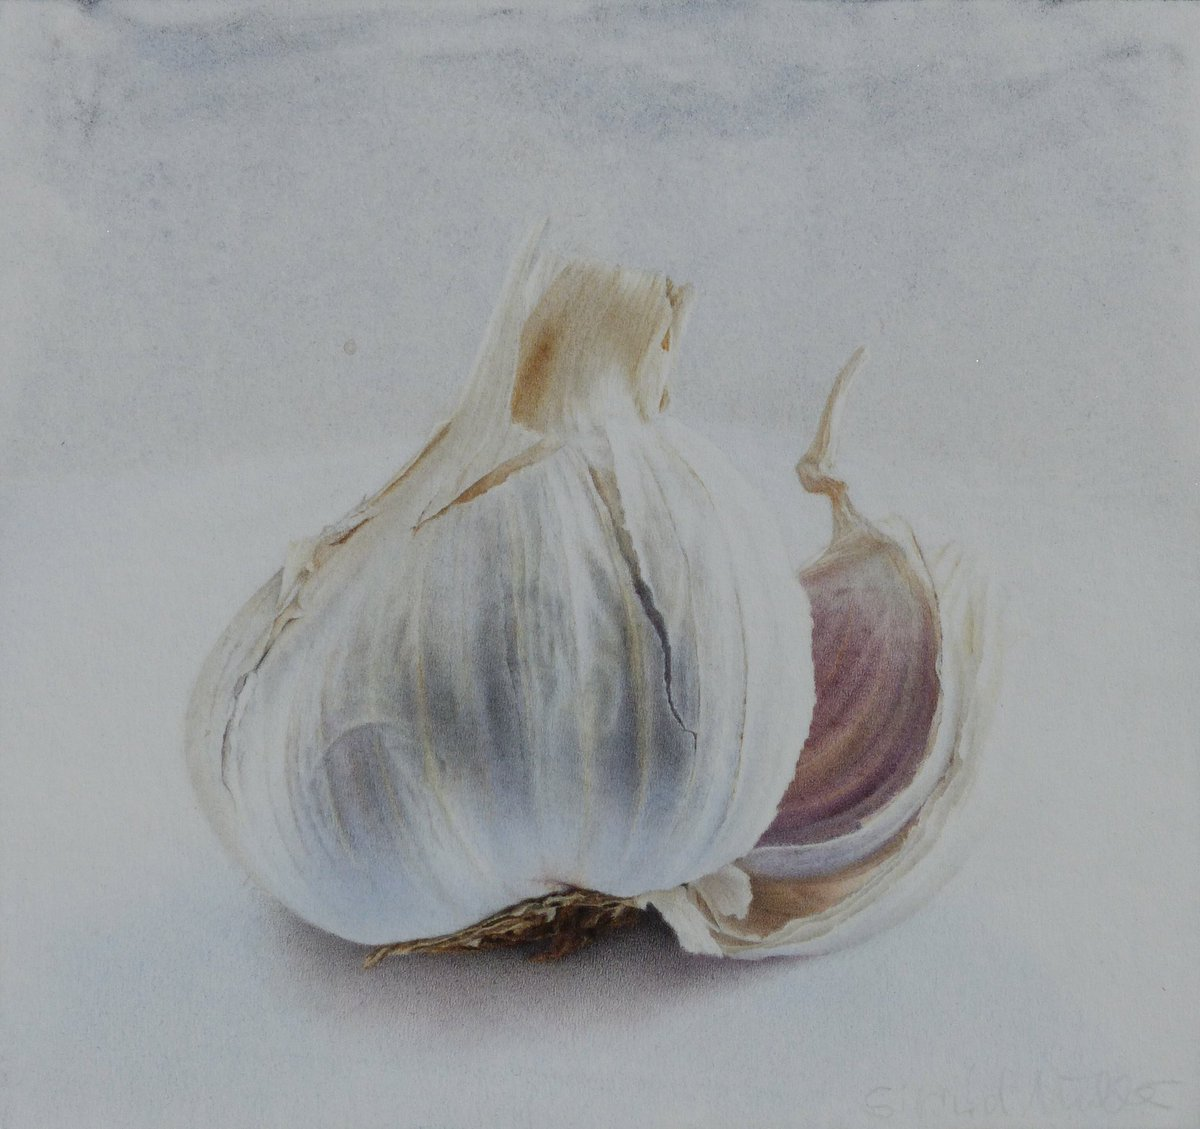 Sigrid muller on twitter garlic drawing with pencil crayon and